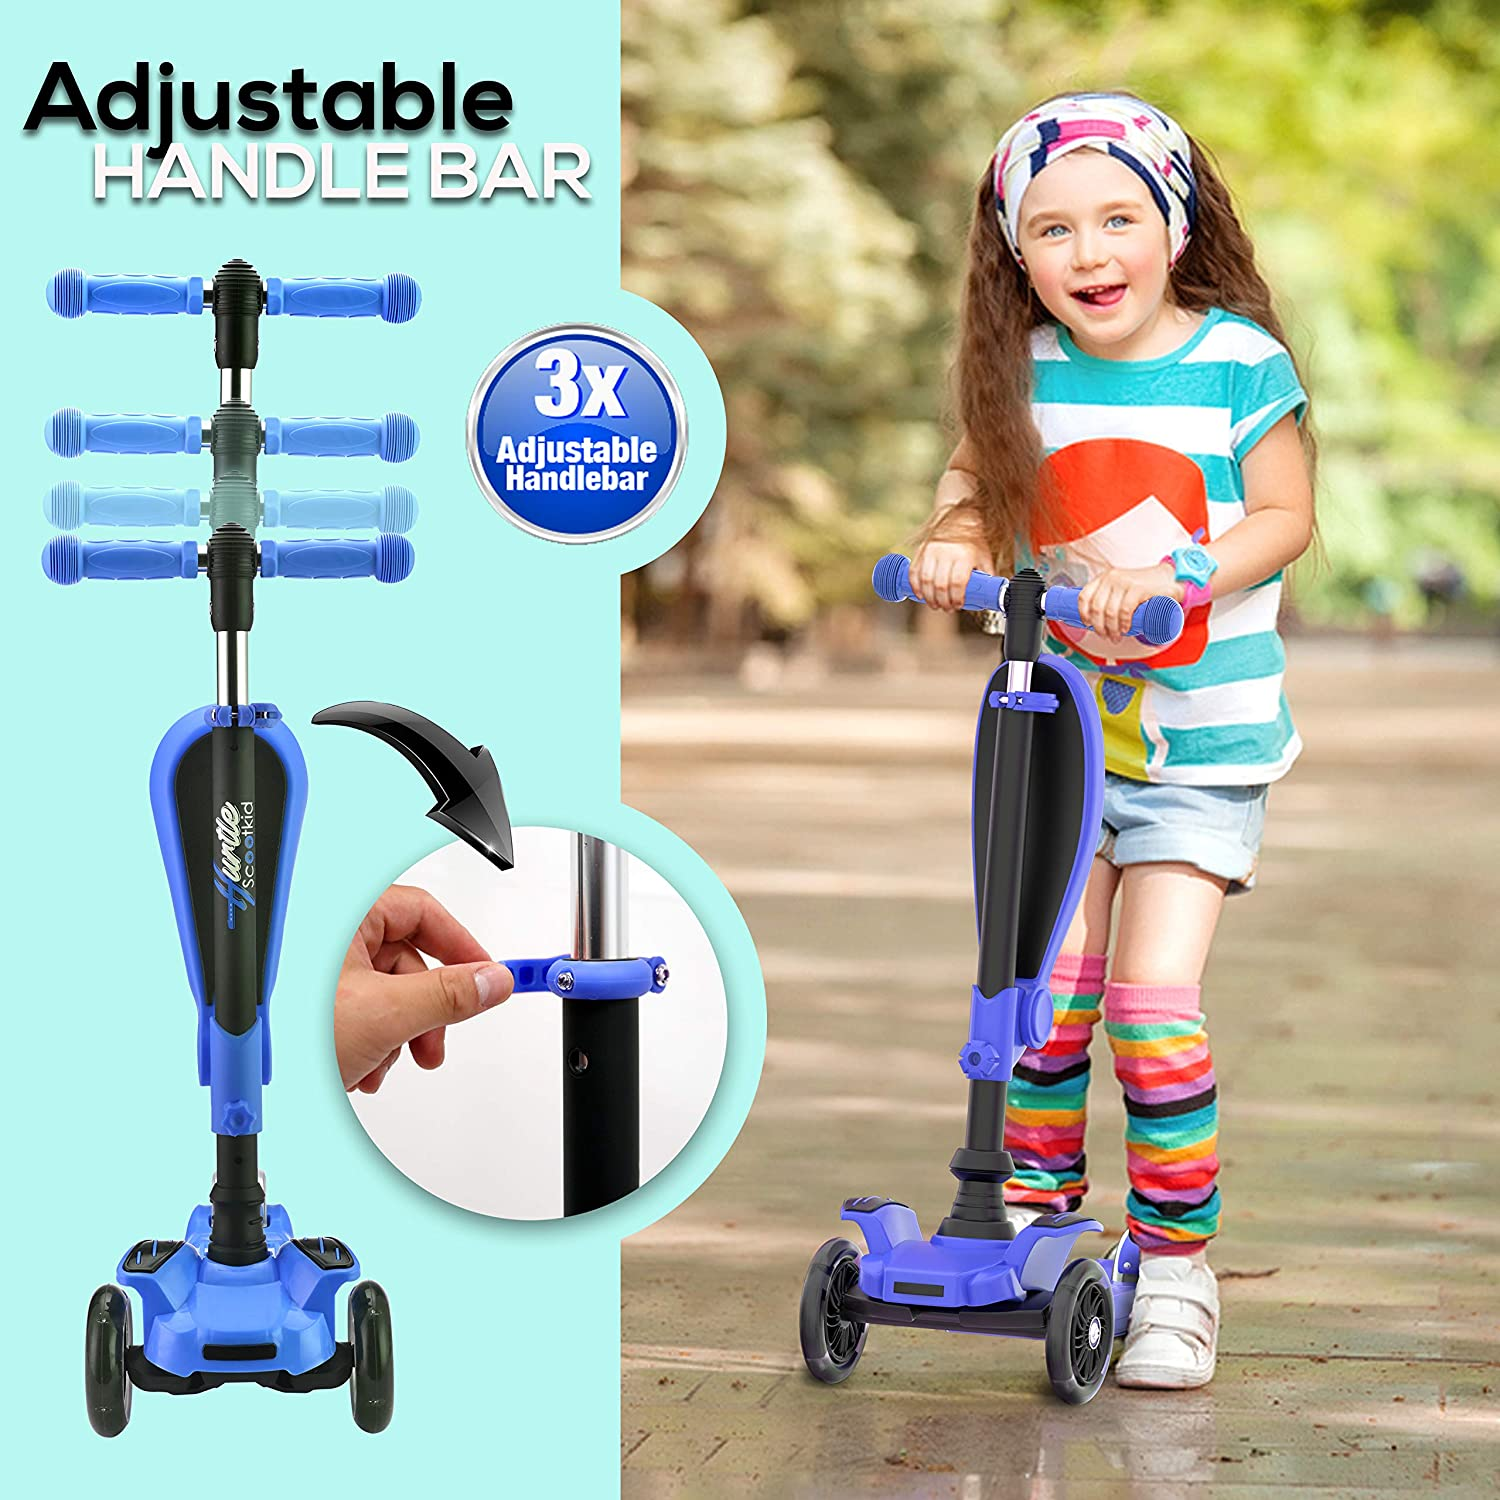 3 Wheeled Scooter for Kids Wide Deck Flashing Wheel Lights Blue Great for Outdoor Fun 2-in-1 Sit//Stand Child Toddlers Toy Kick Scooters w//Flip-Out Seat Hurtle HURFS56 Adjustable Height